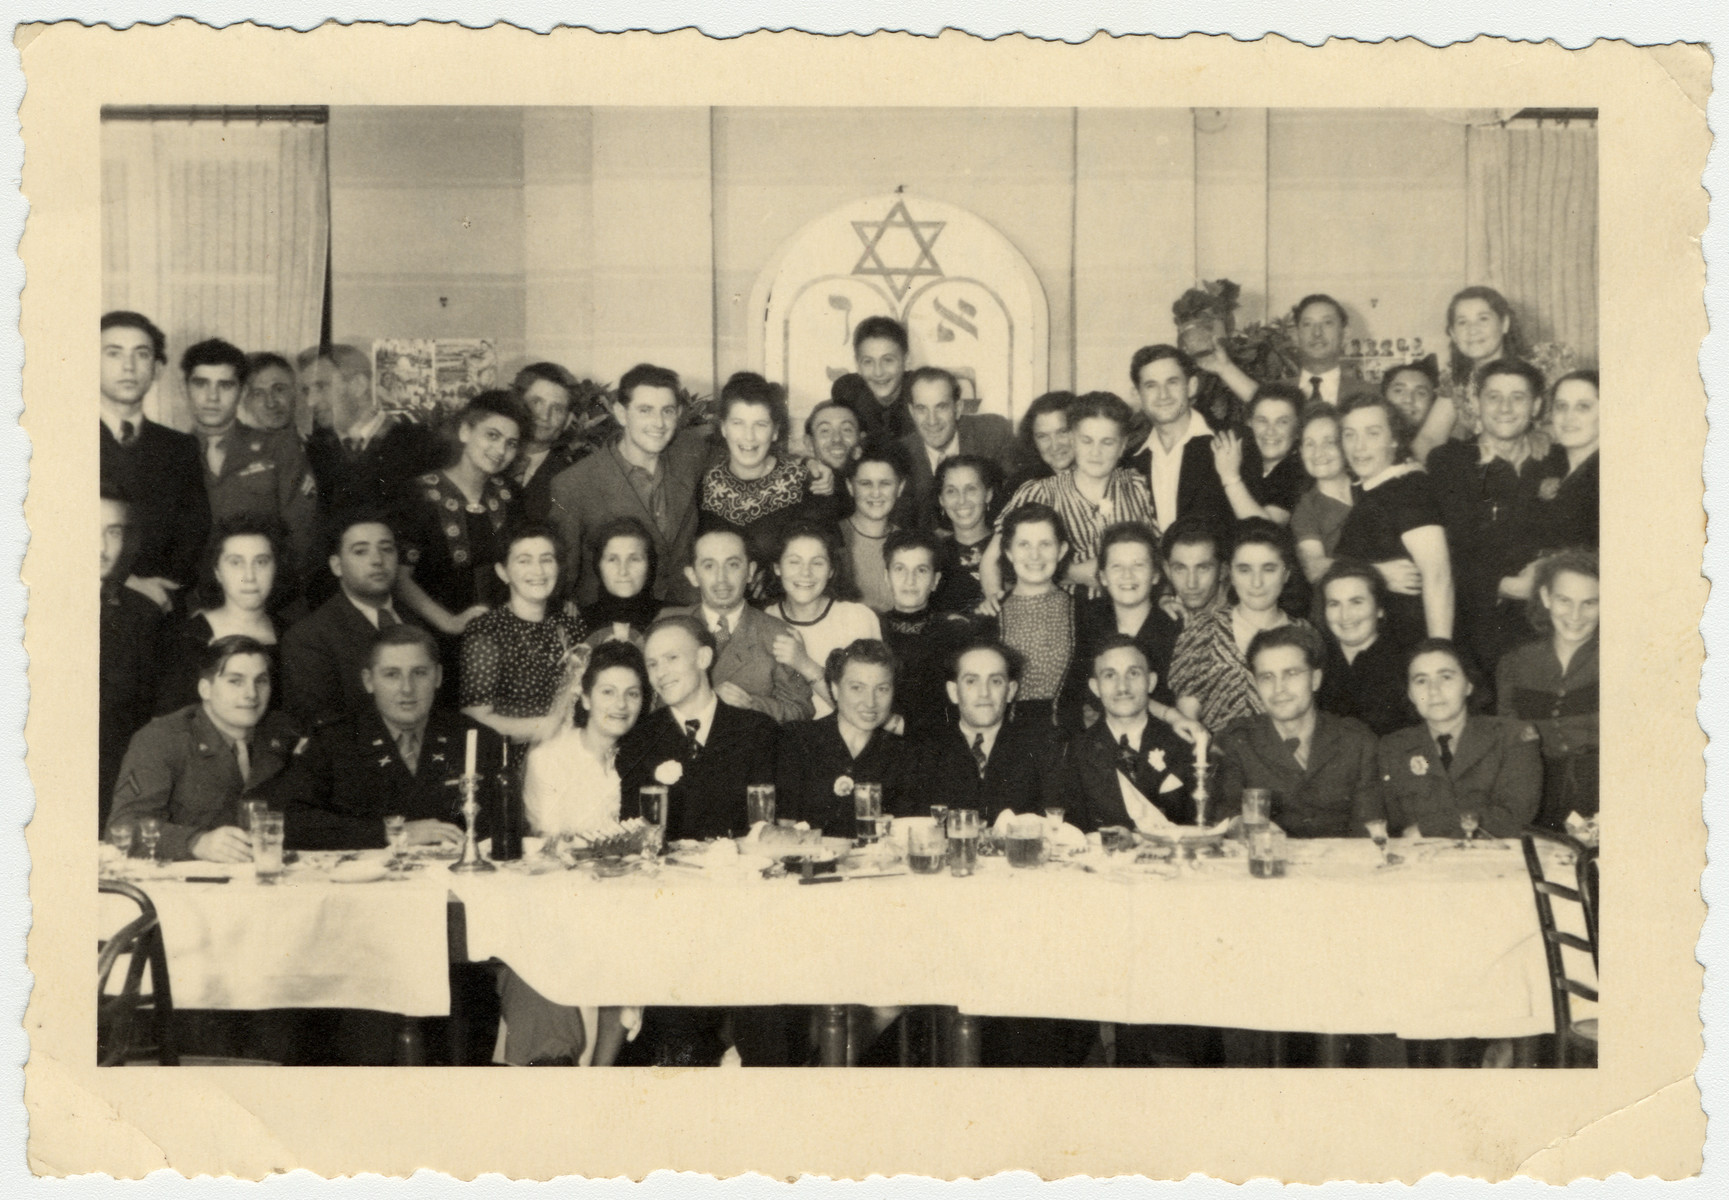 A large group of displaced persons and American soldiers celebrate a wedding in Lindenfels.